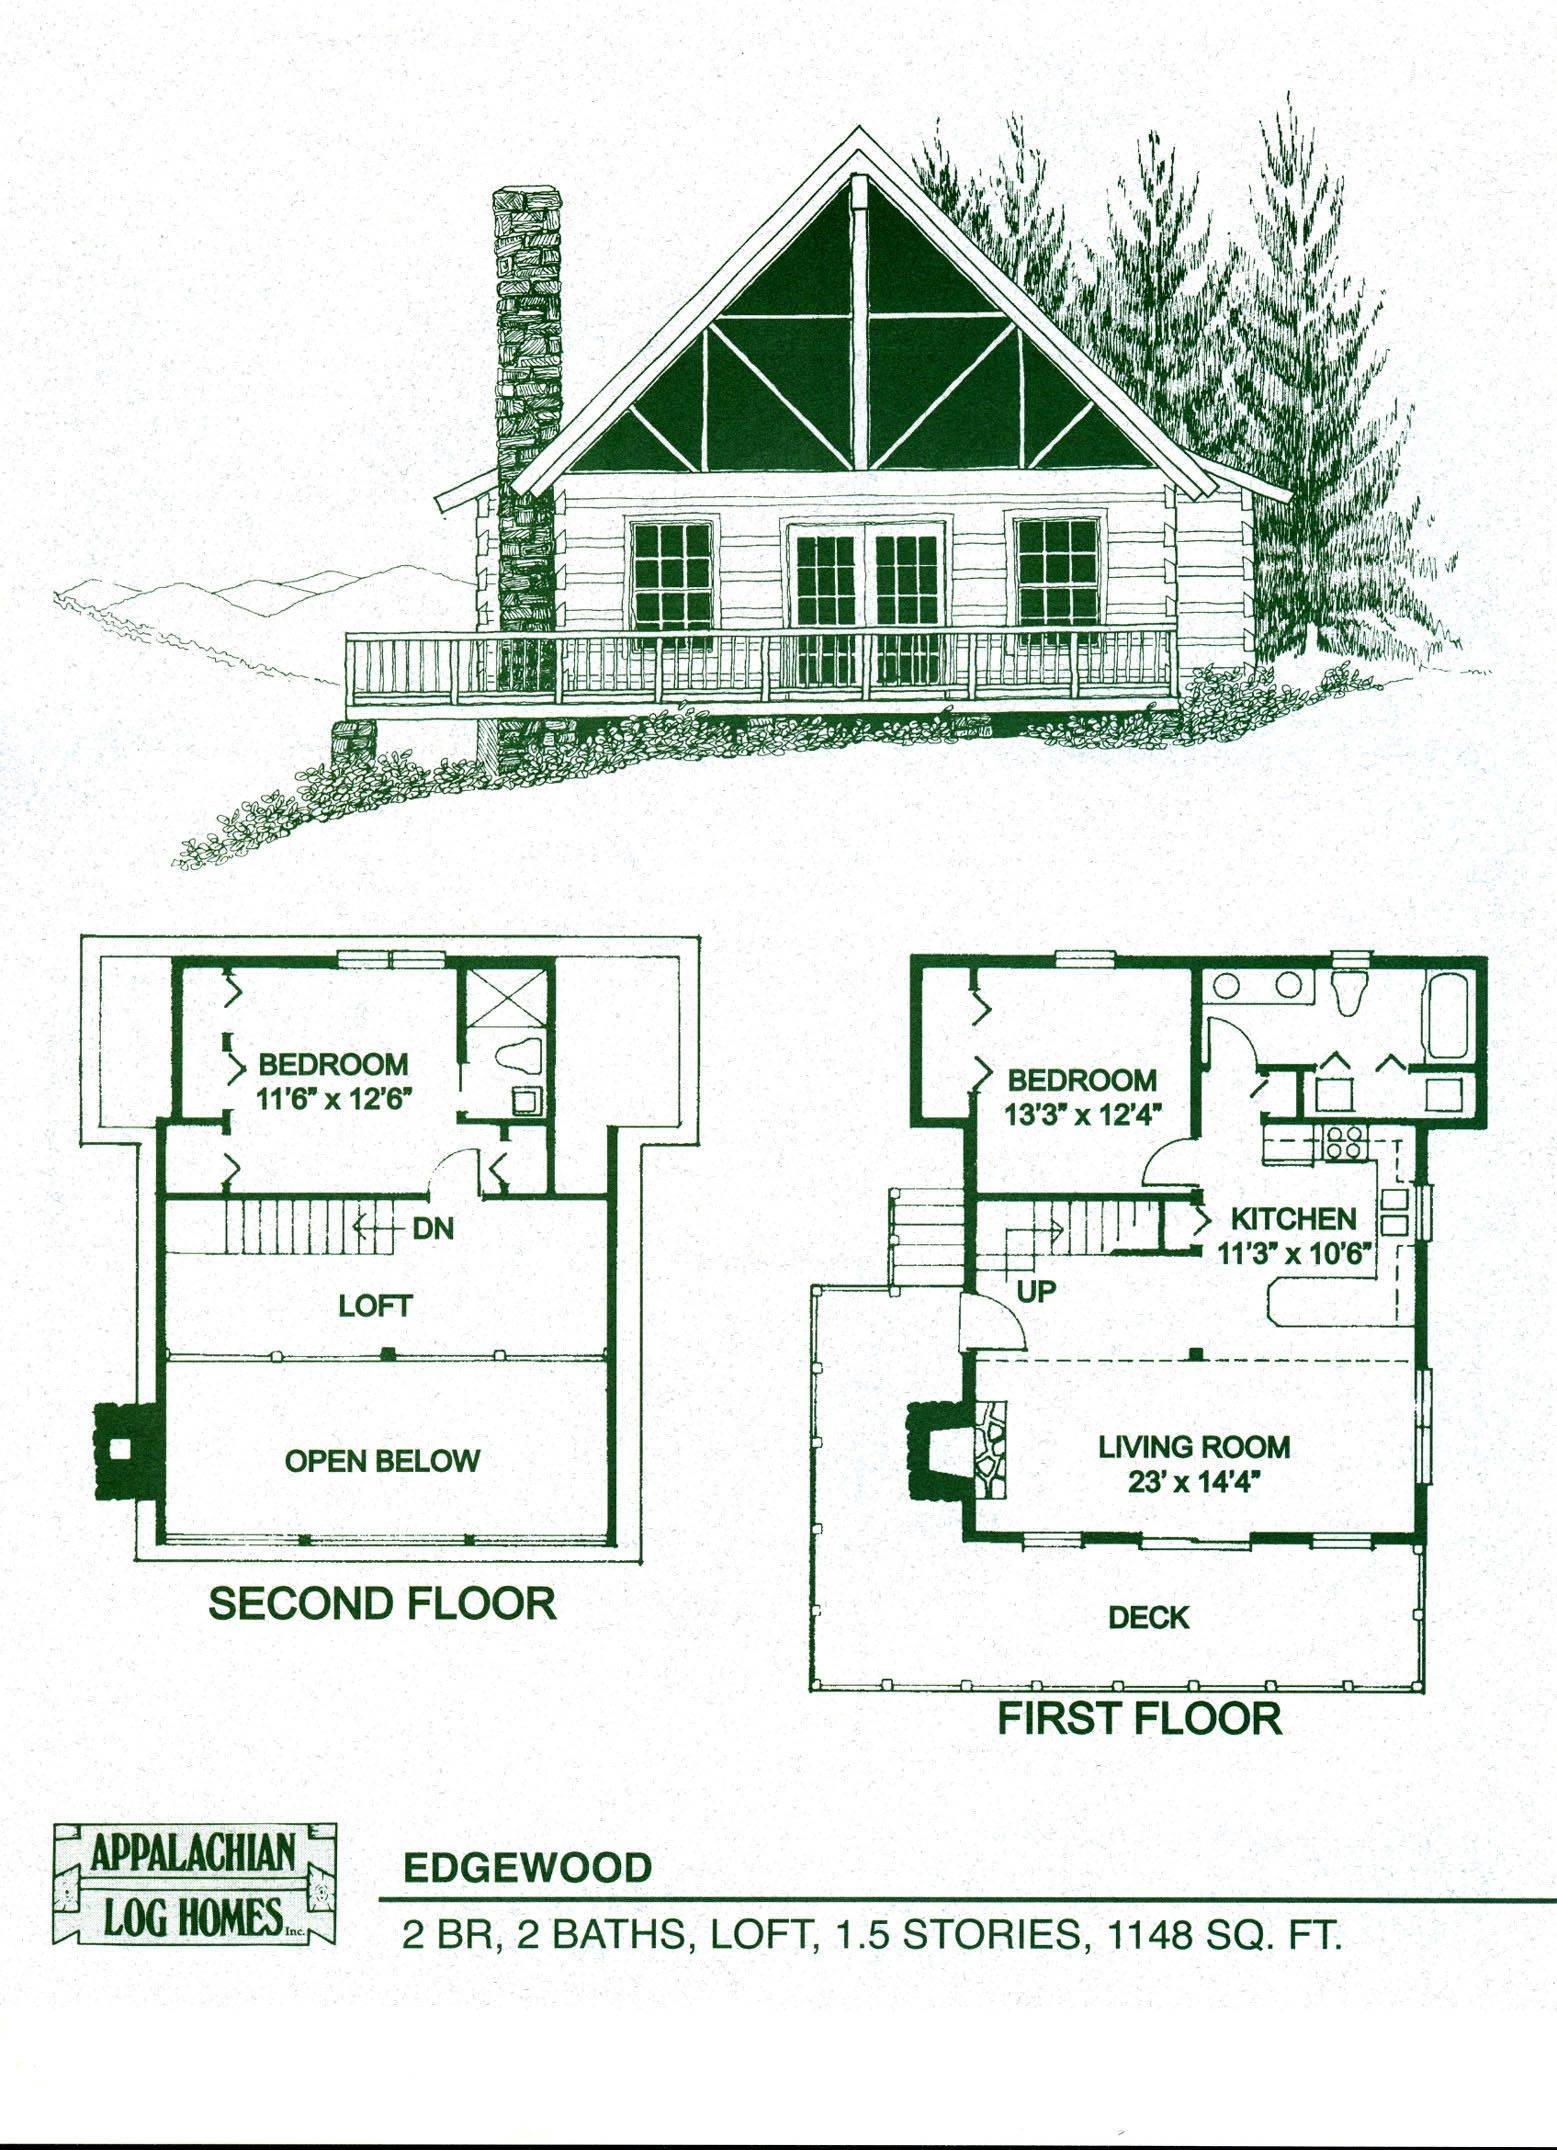 Floor Plans For A Small Log Cabin | LED Dance floor Manufacture and ...